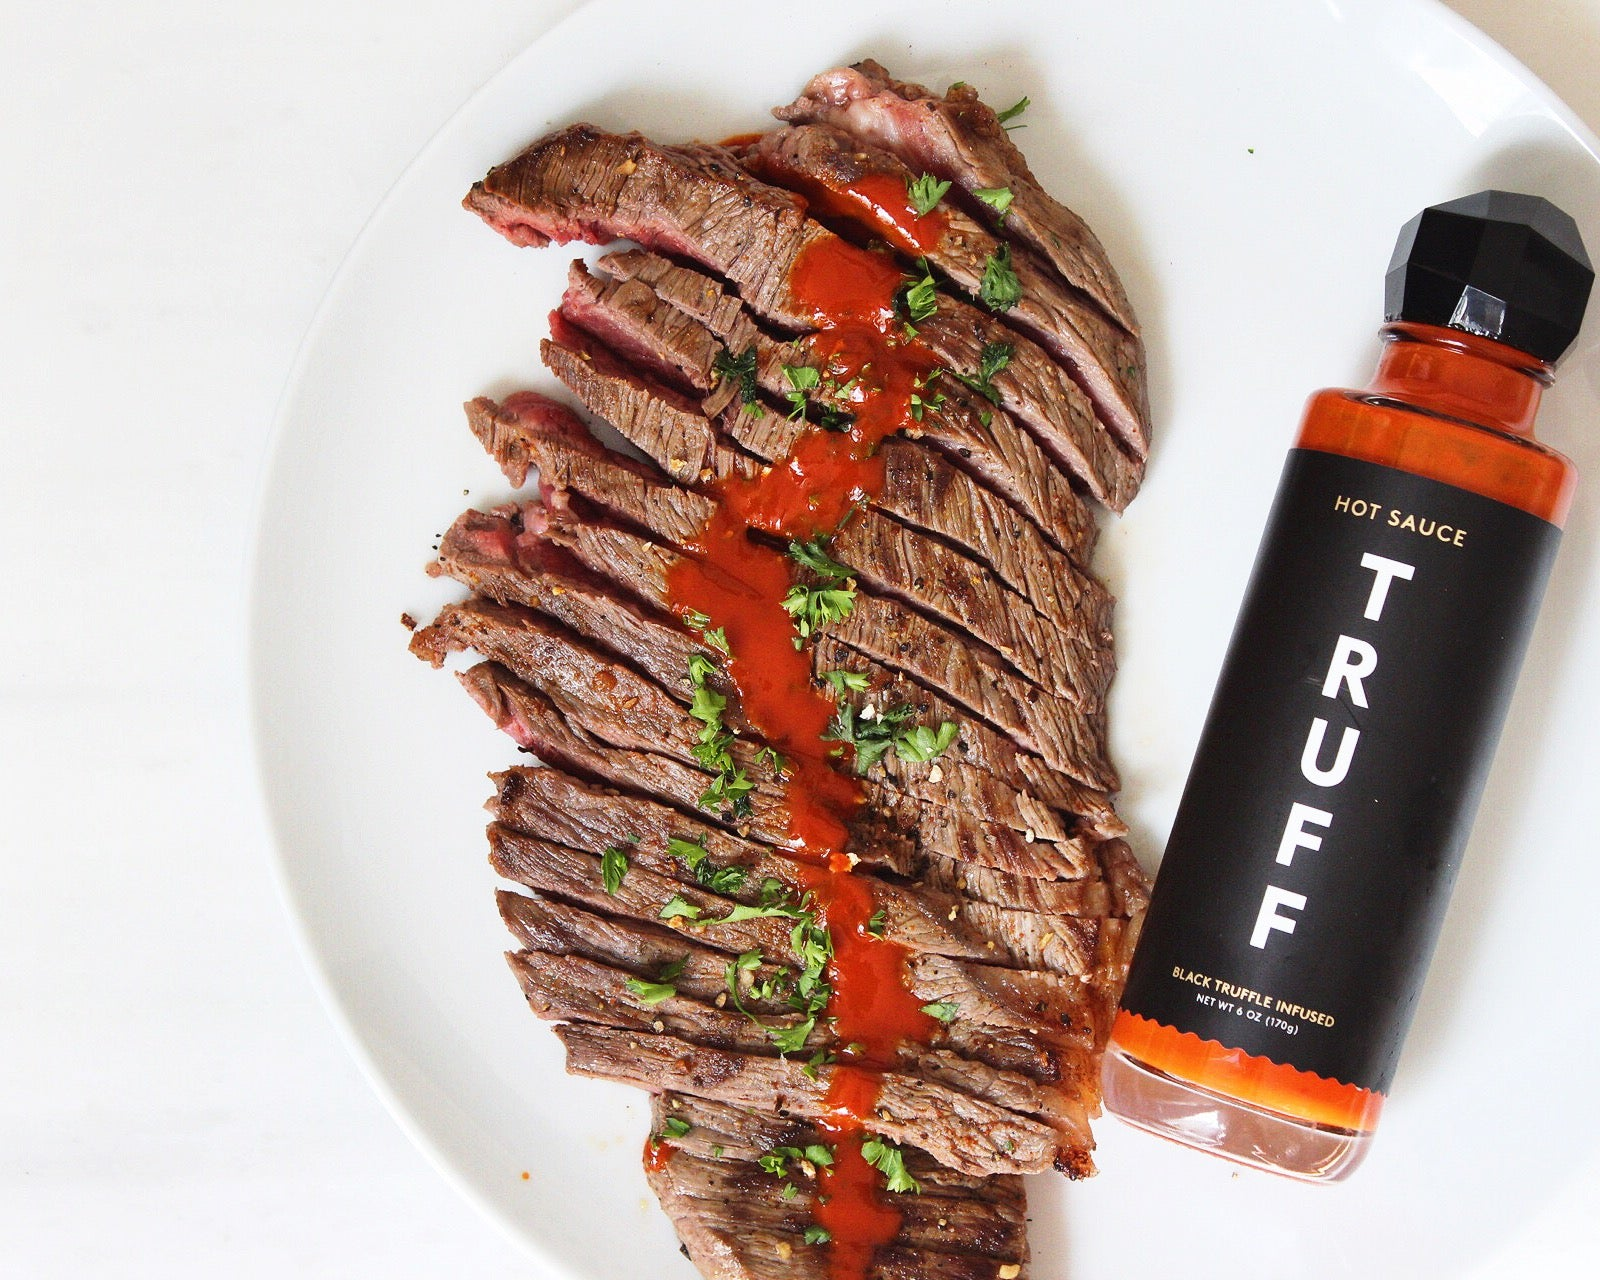 A plate of steak with a bottle of Truff sauce on the side.